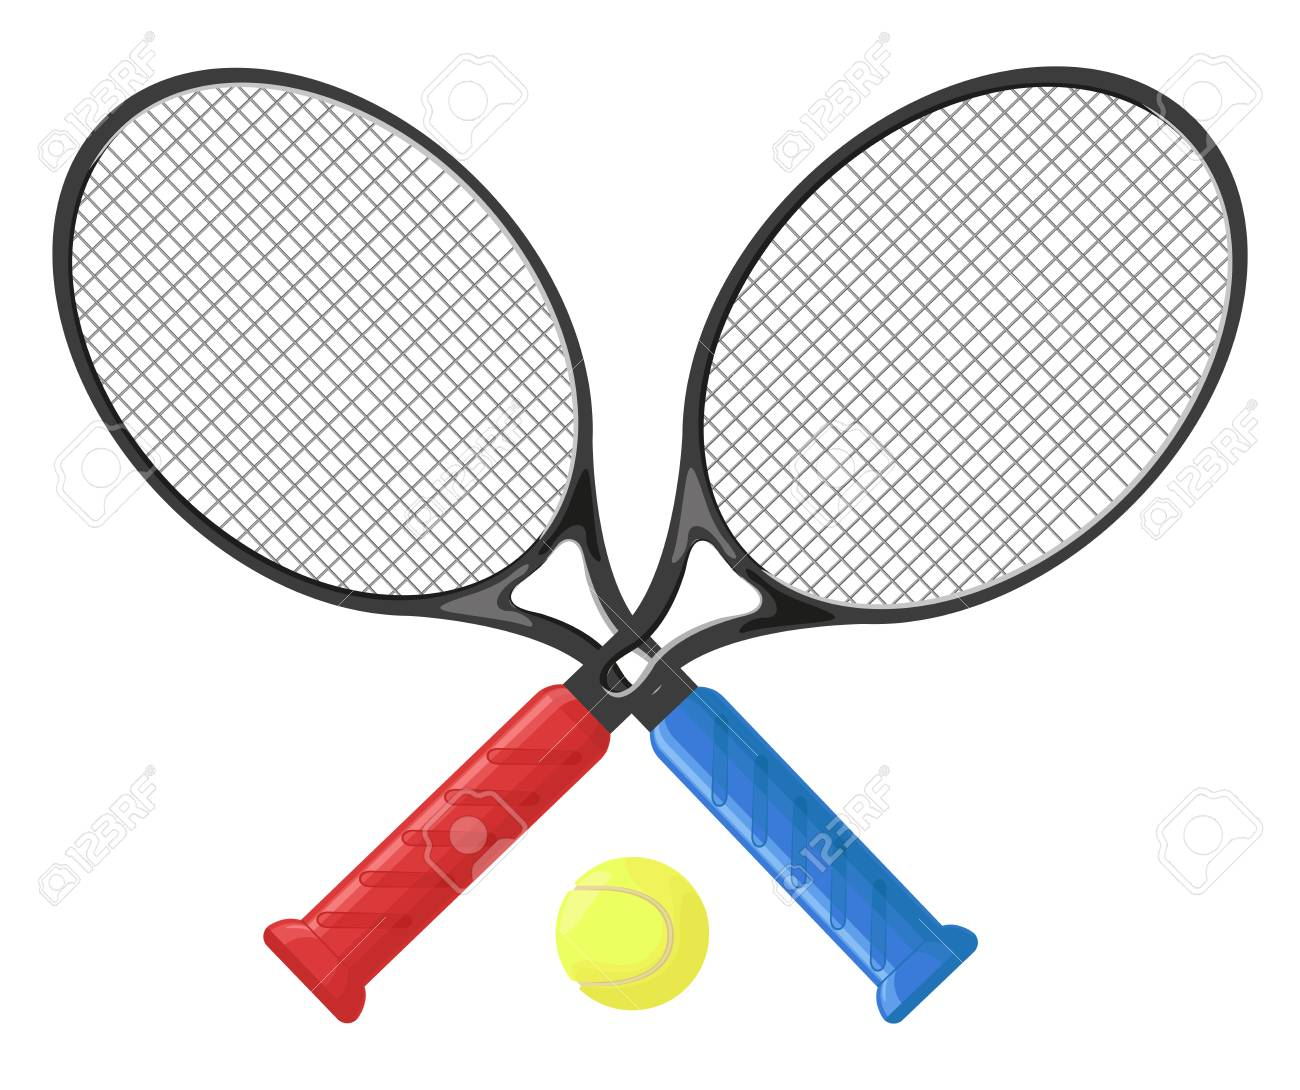 Two Tennis Rackets And Tennis Ball Isolated On White Background